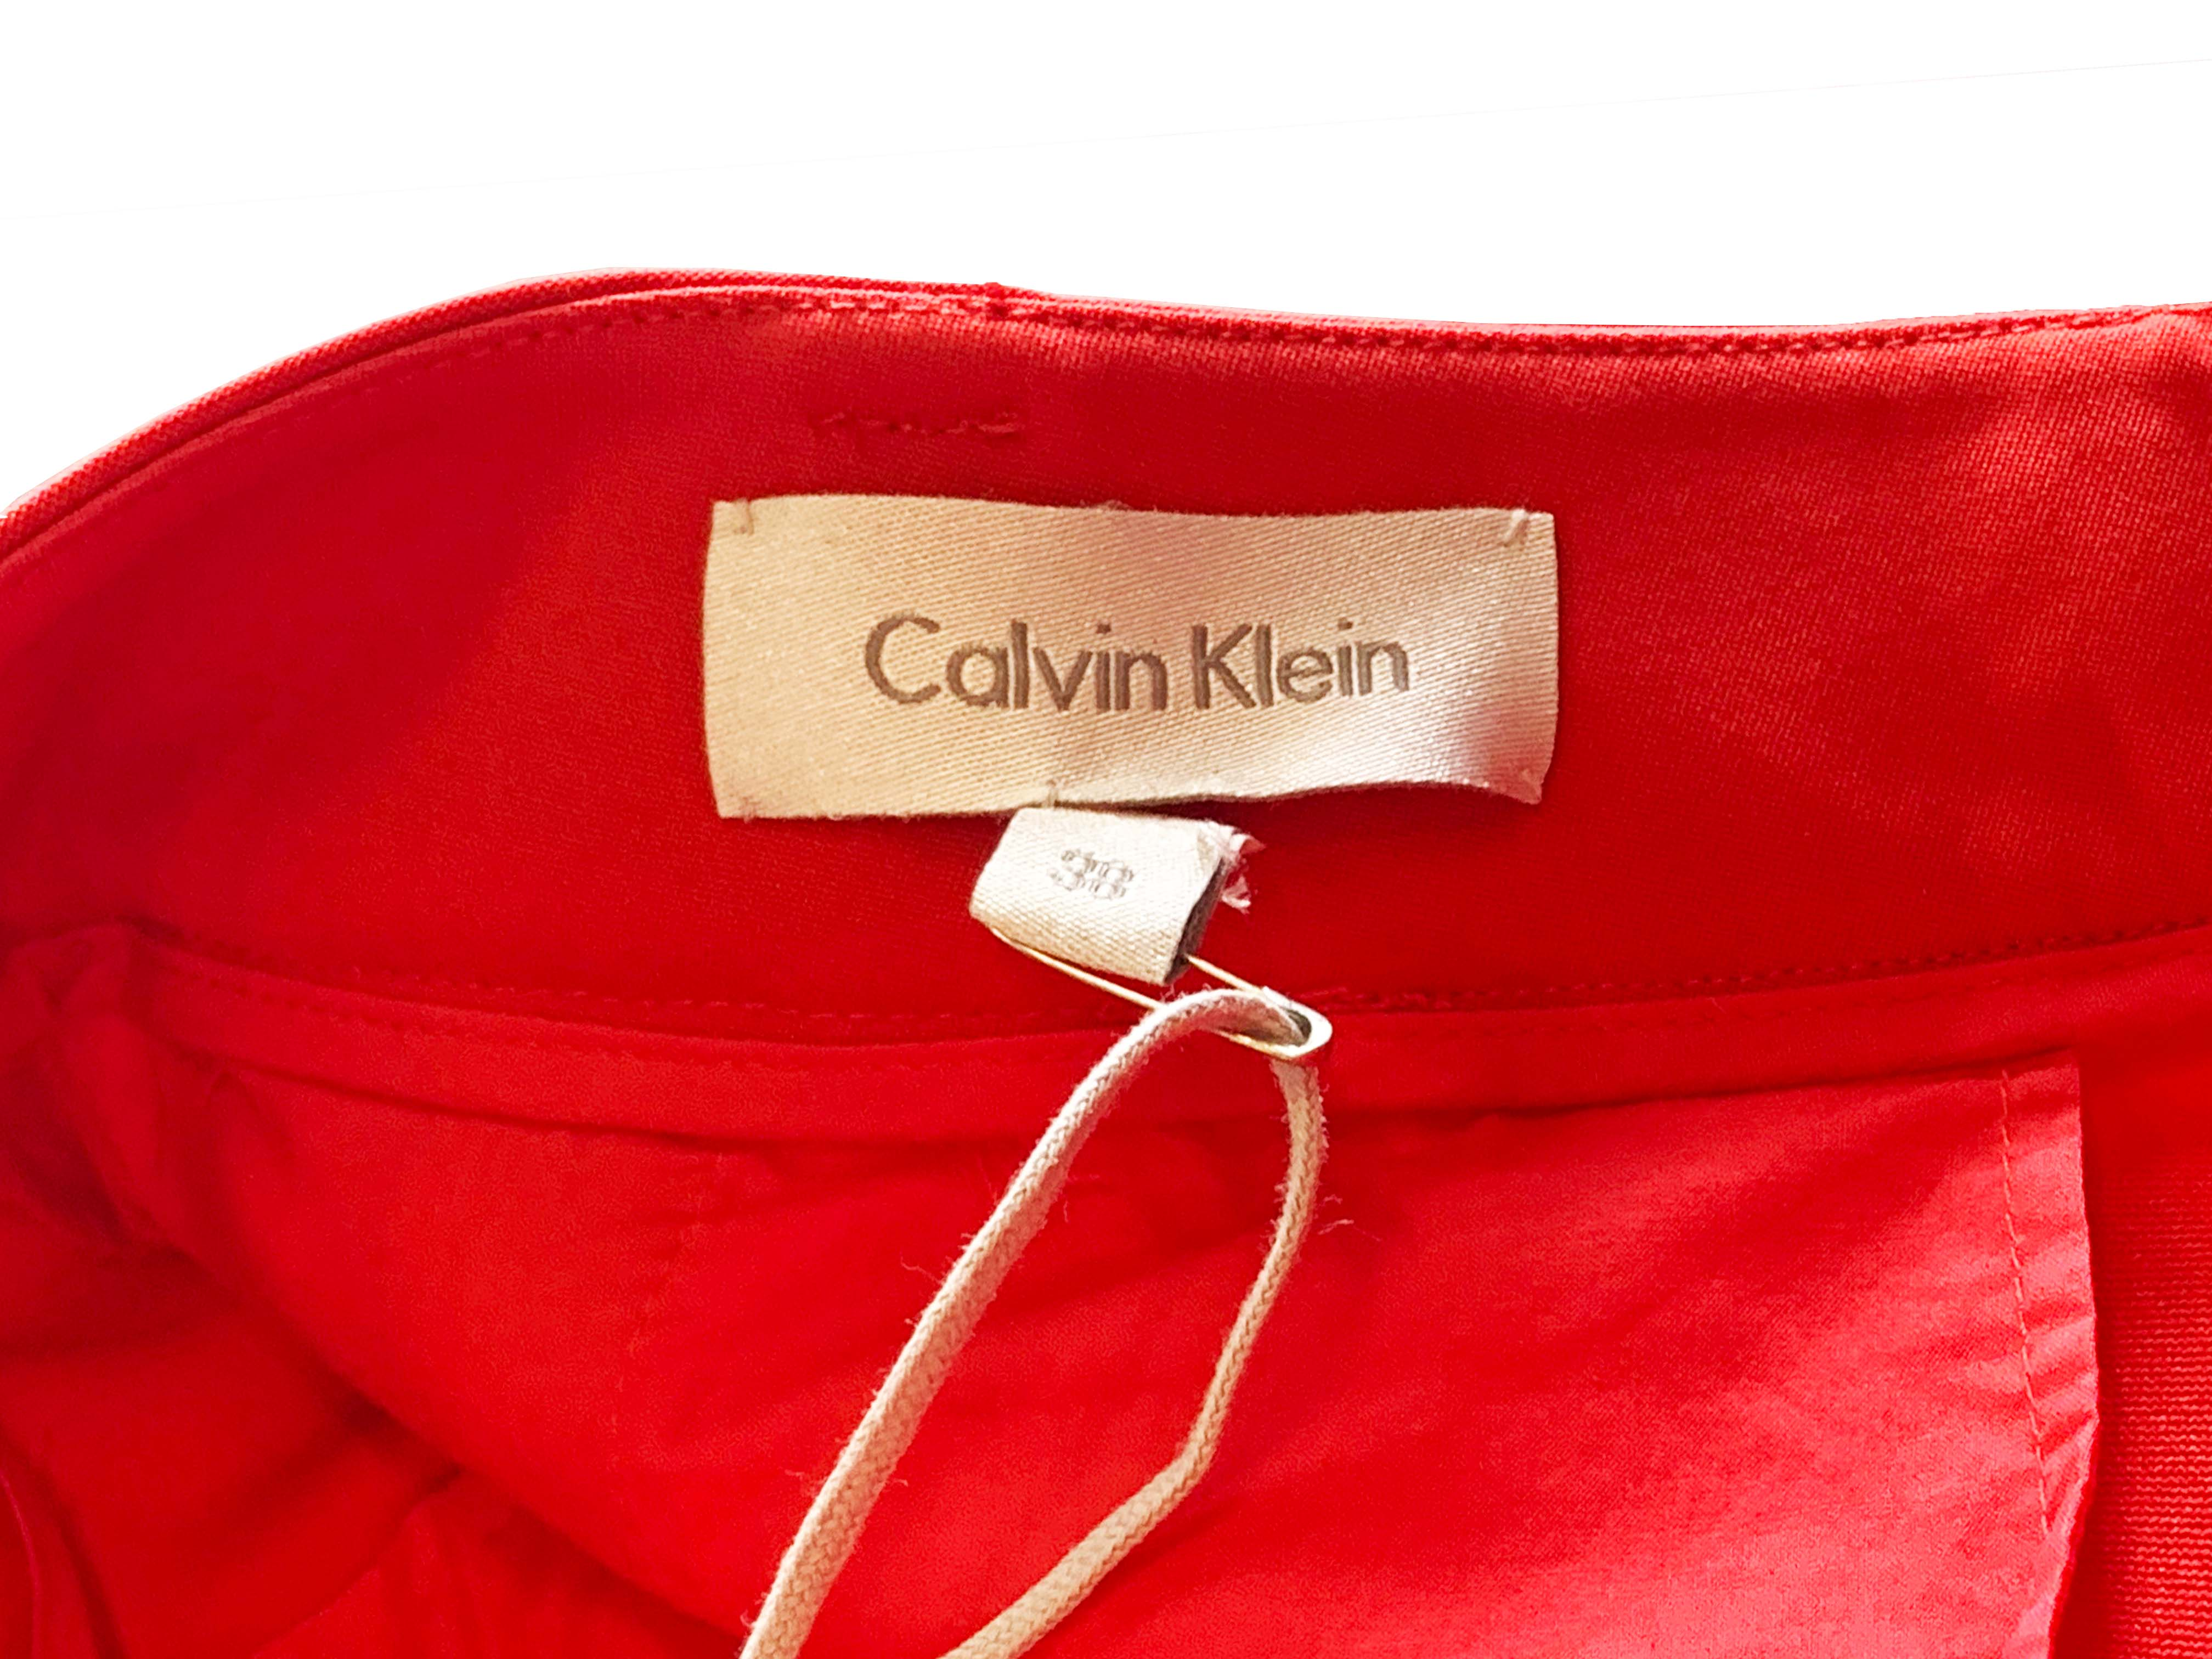 A PAIR OF CALVIN KLEIN RED TROUSERS - Image 3 of 3